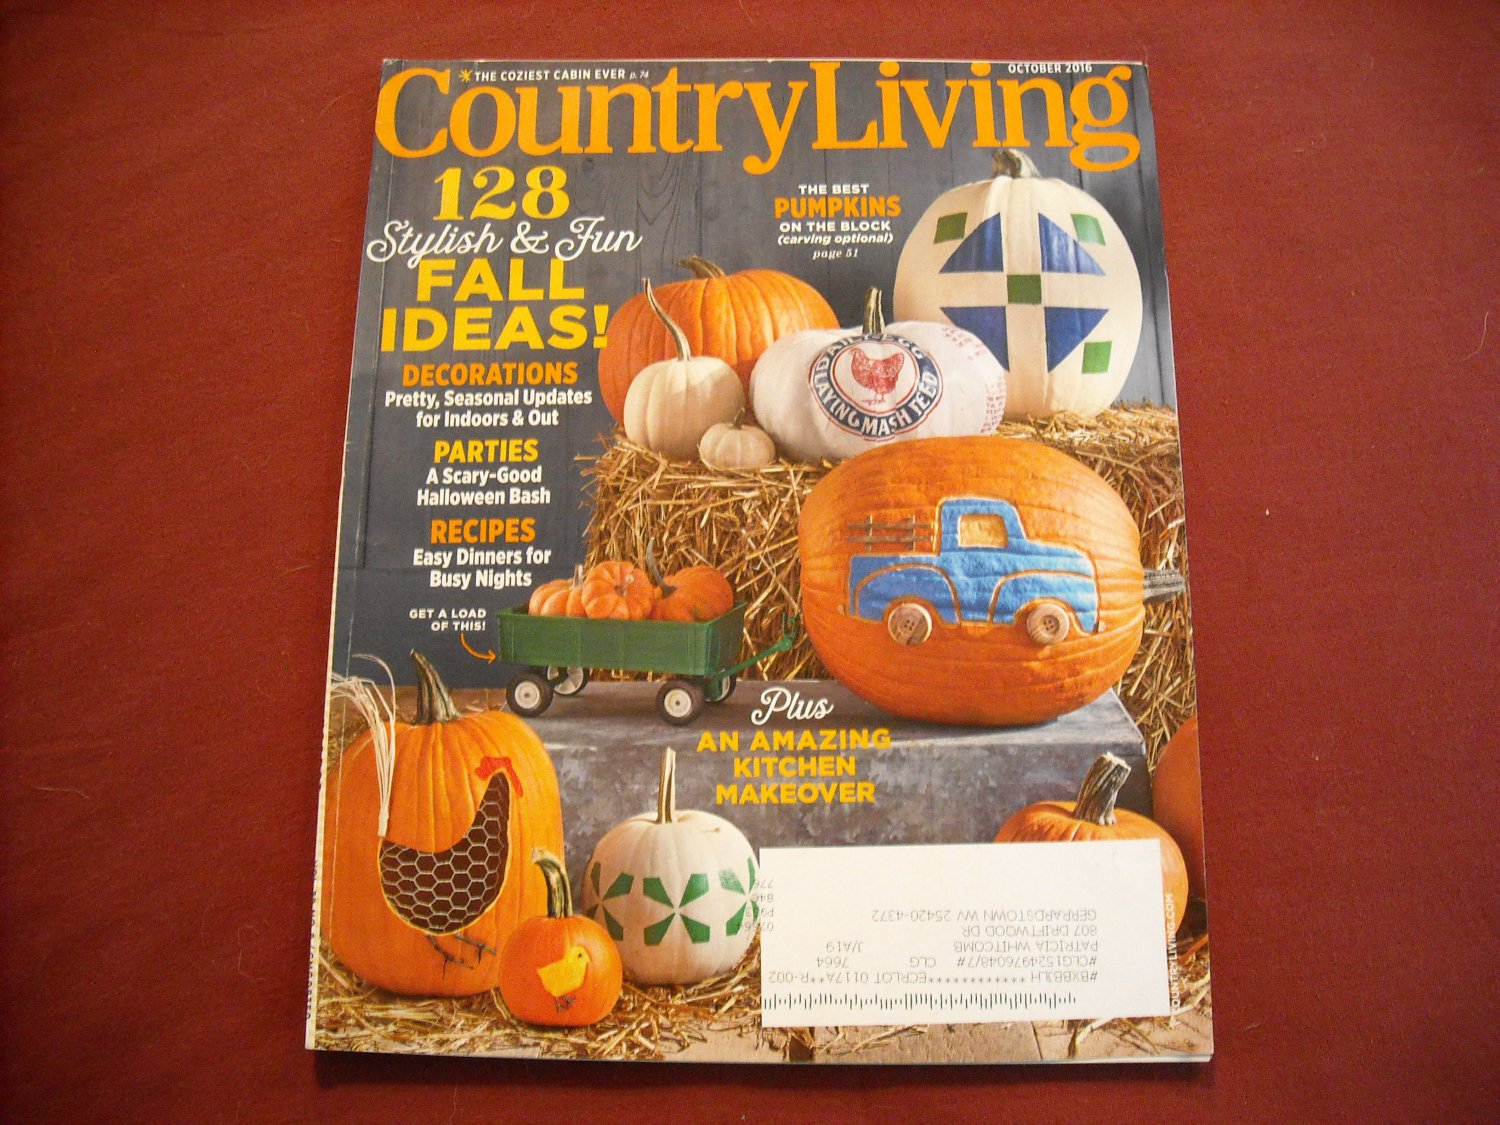 Country Living October 2016 Vol 39 No 8 Stylish & Fun Ideas for Fall (G1)